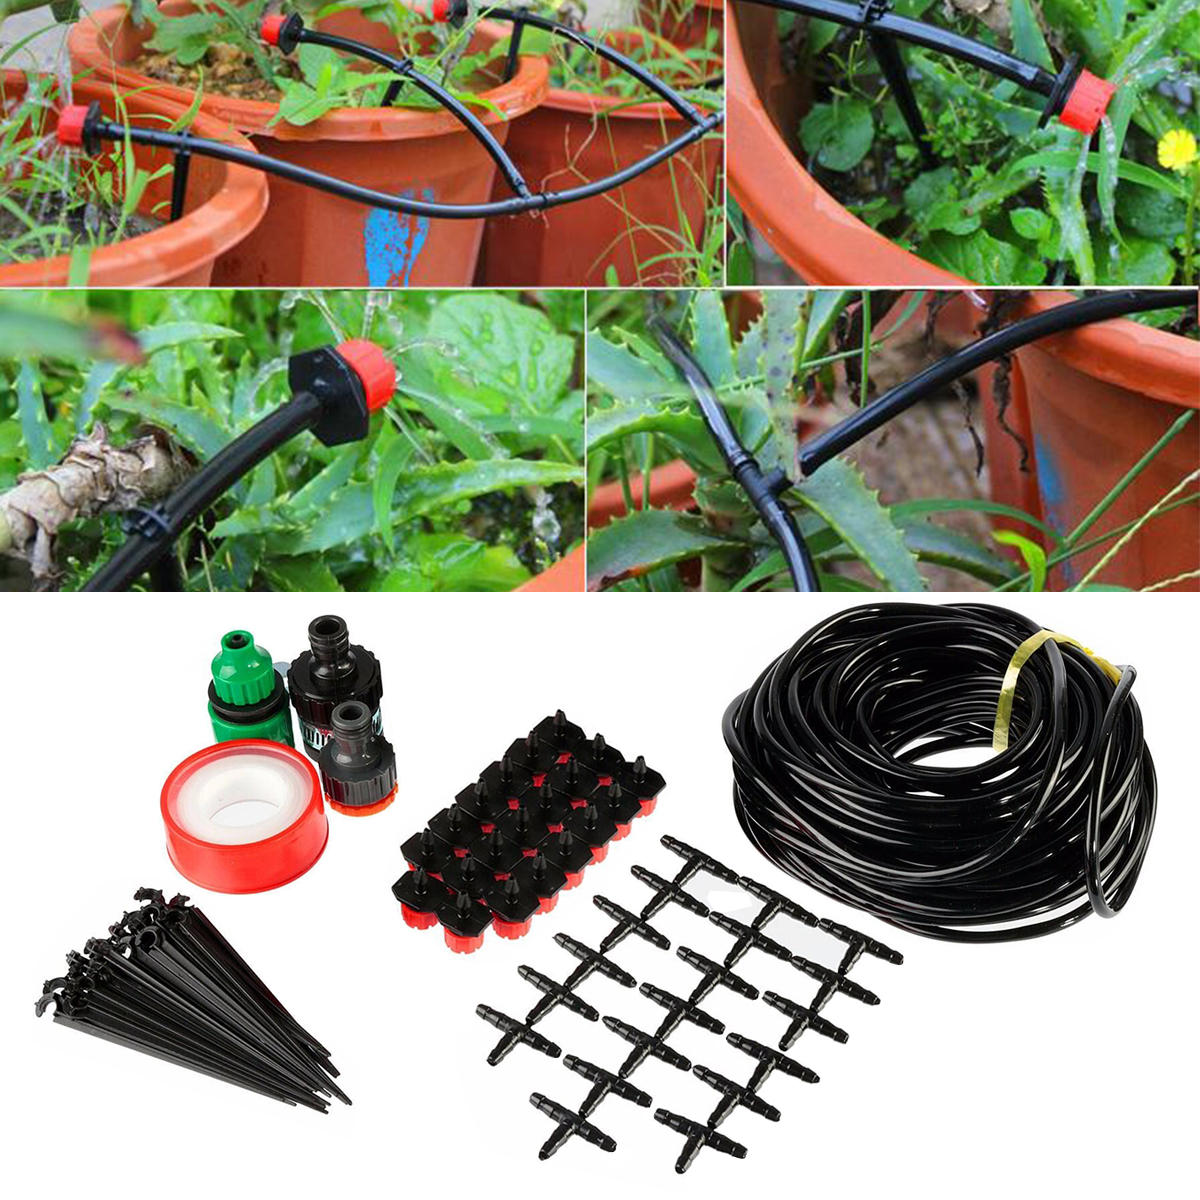 15M SET king do way Micro Drip Irrigation Kit Patio Plant Watering Kit Watering System Adjustable Drippers Micro Flow Drip Watering Kits Automatic Sprinkler System Kit for Outdoor Garden